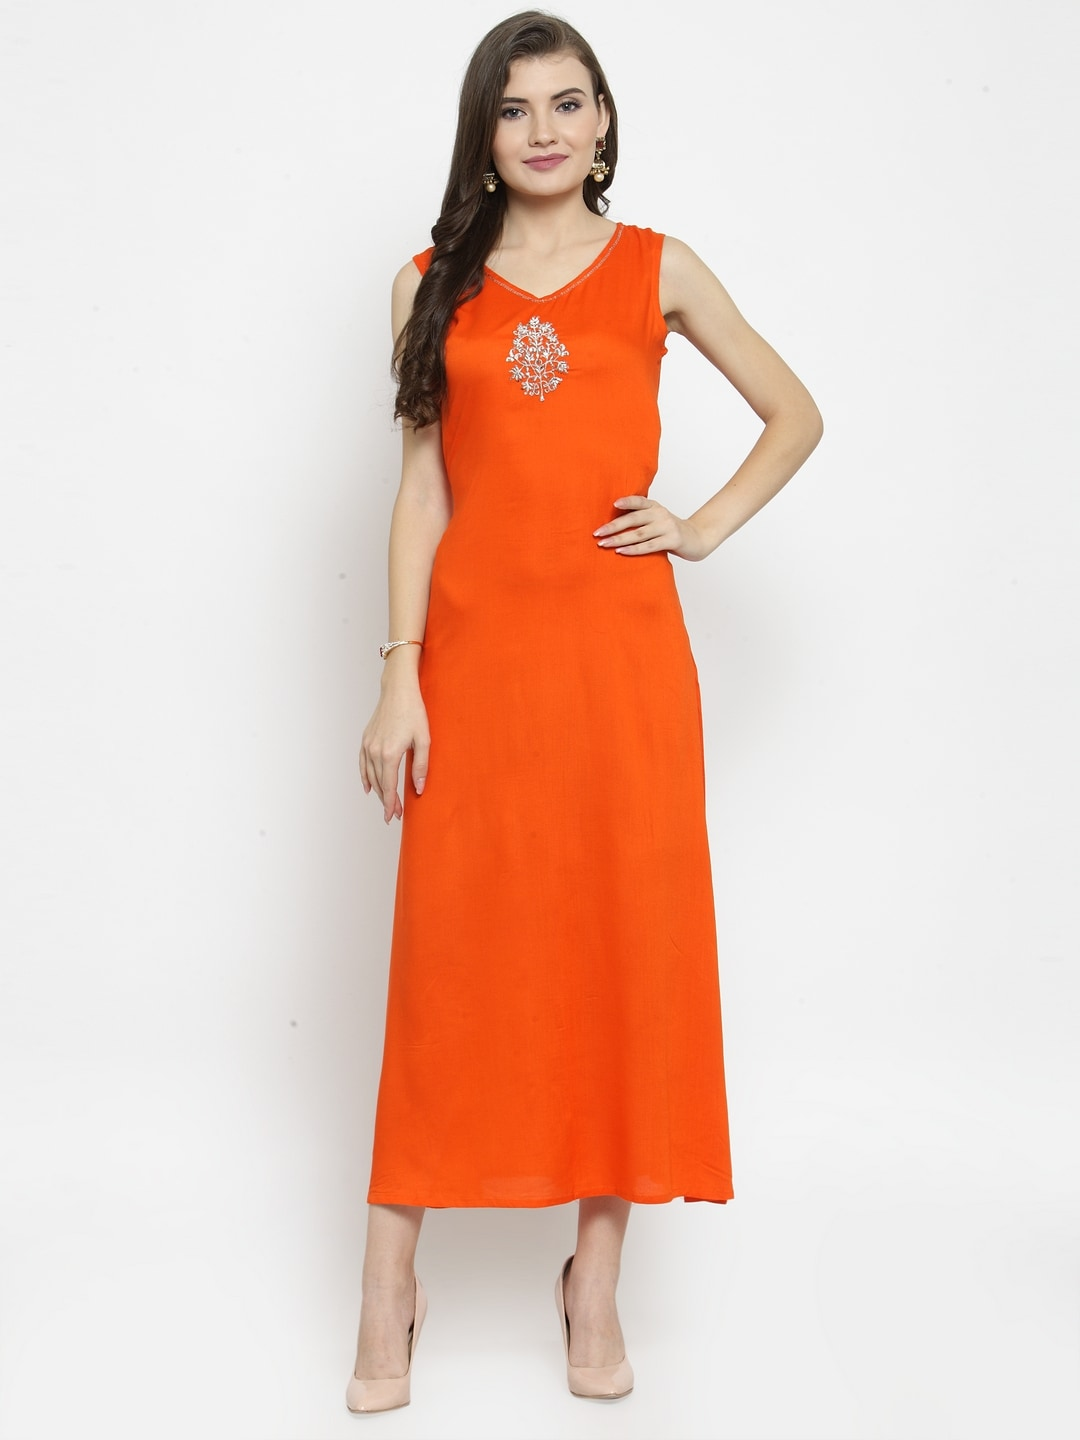 b4ebf4abad Party Dresses - Buy Partywear Dress for Women & Girls | Myntra